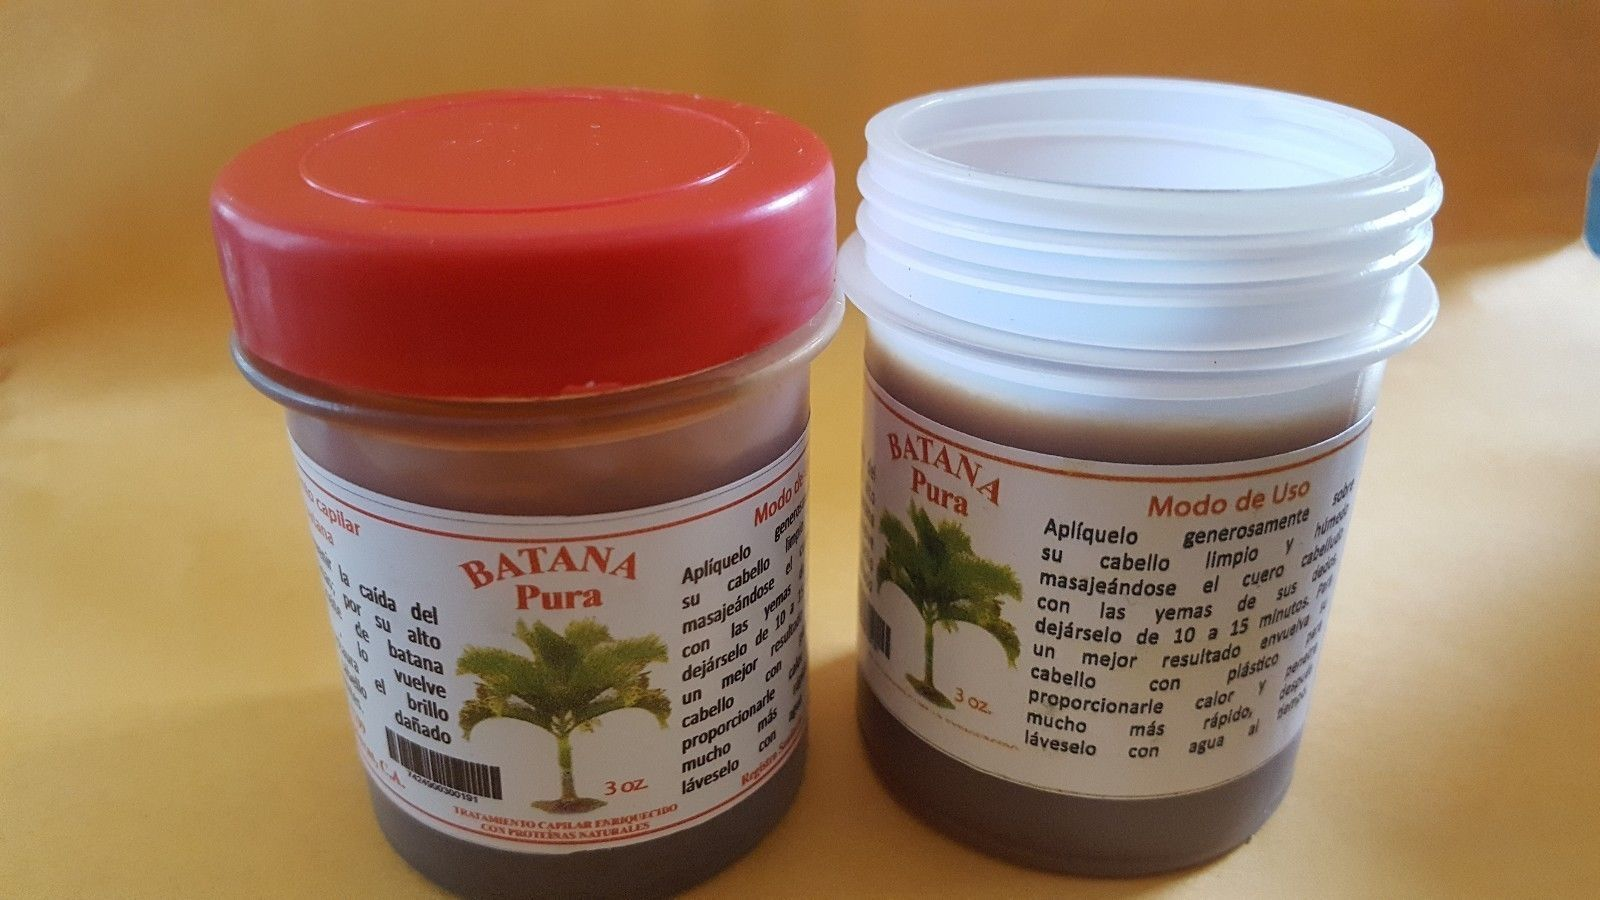 Buy 6 Jars of Pure Batana Oil Made from Ojon Palm Honduras -La